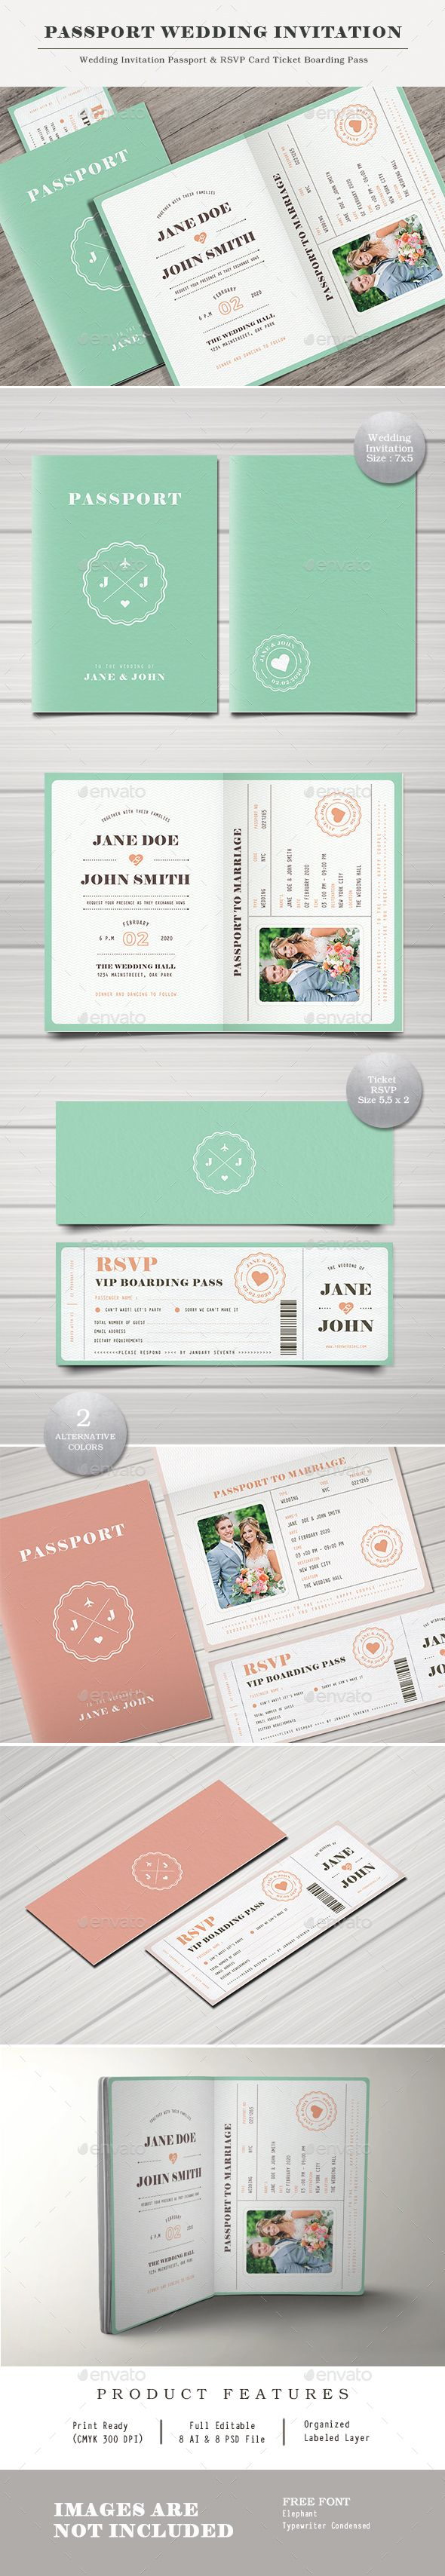 best 25 passport wedding invitations ideas on pinterest passport invitations destination. Black Bedroom Furniture Sets. Home Design Ideas